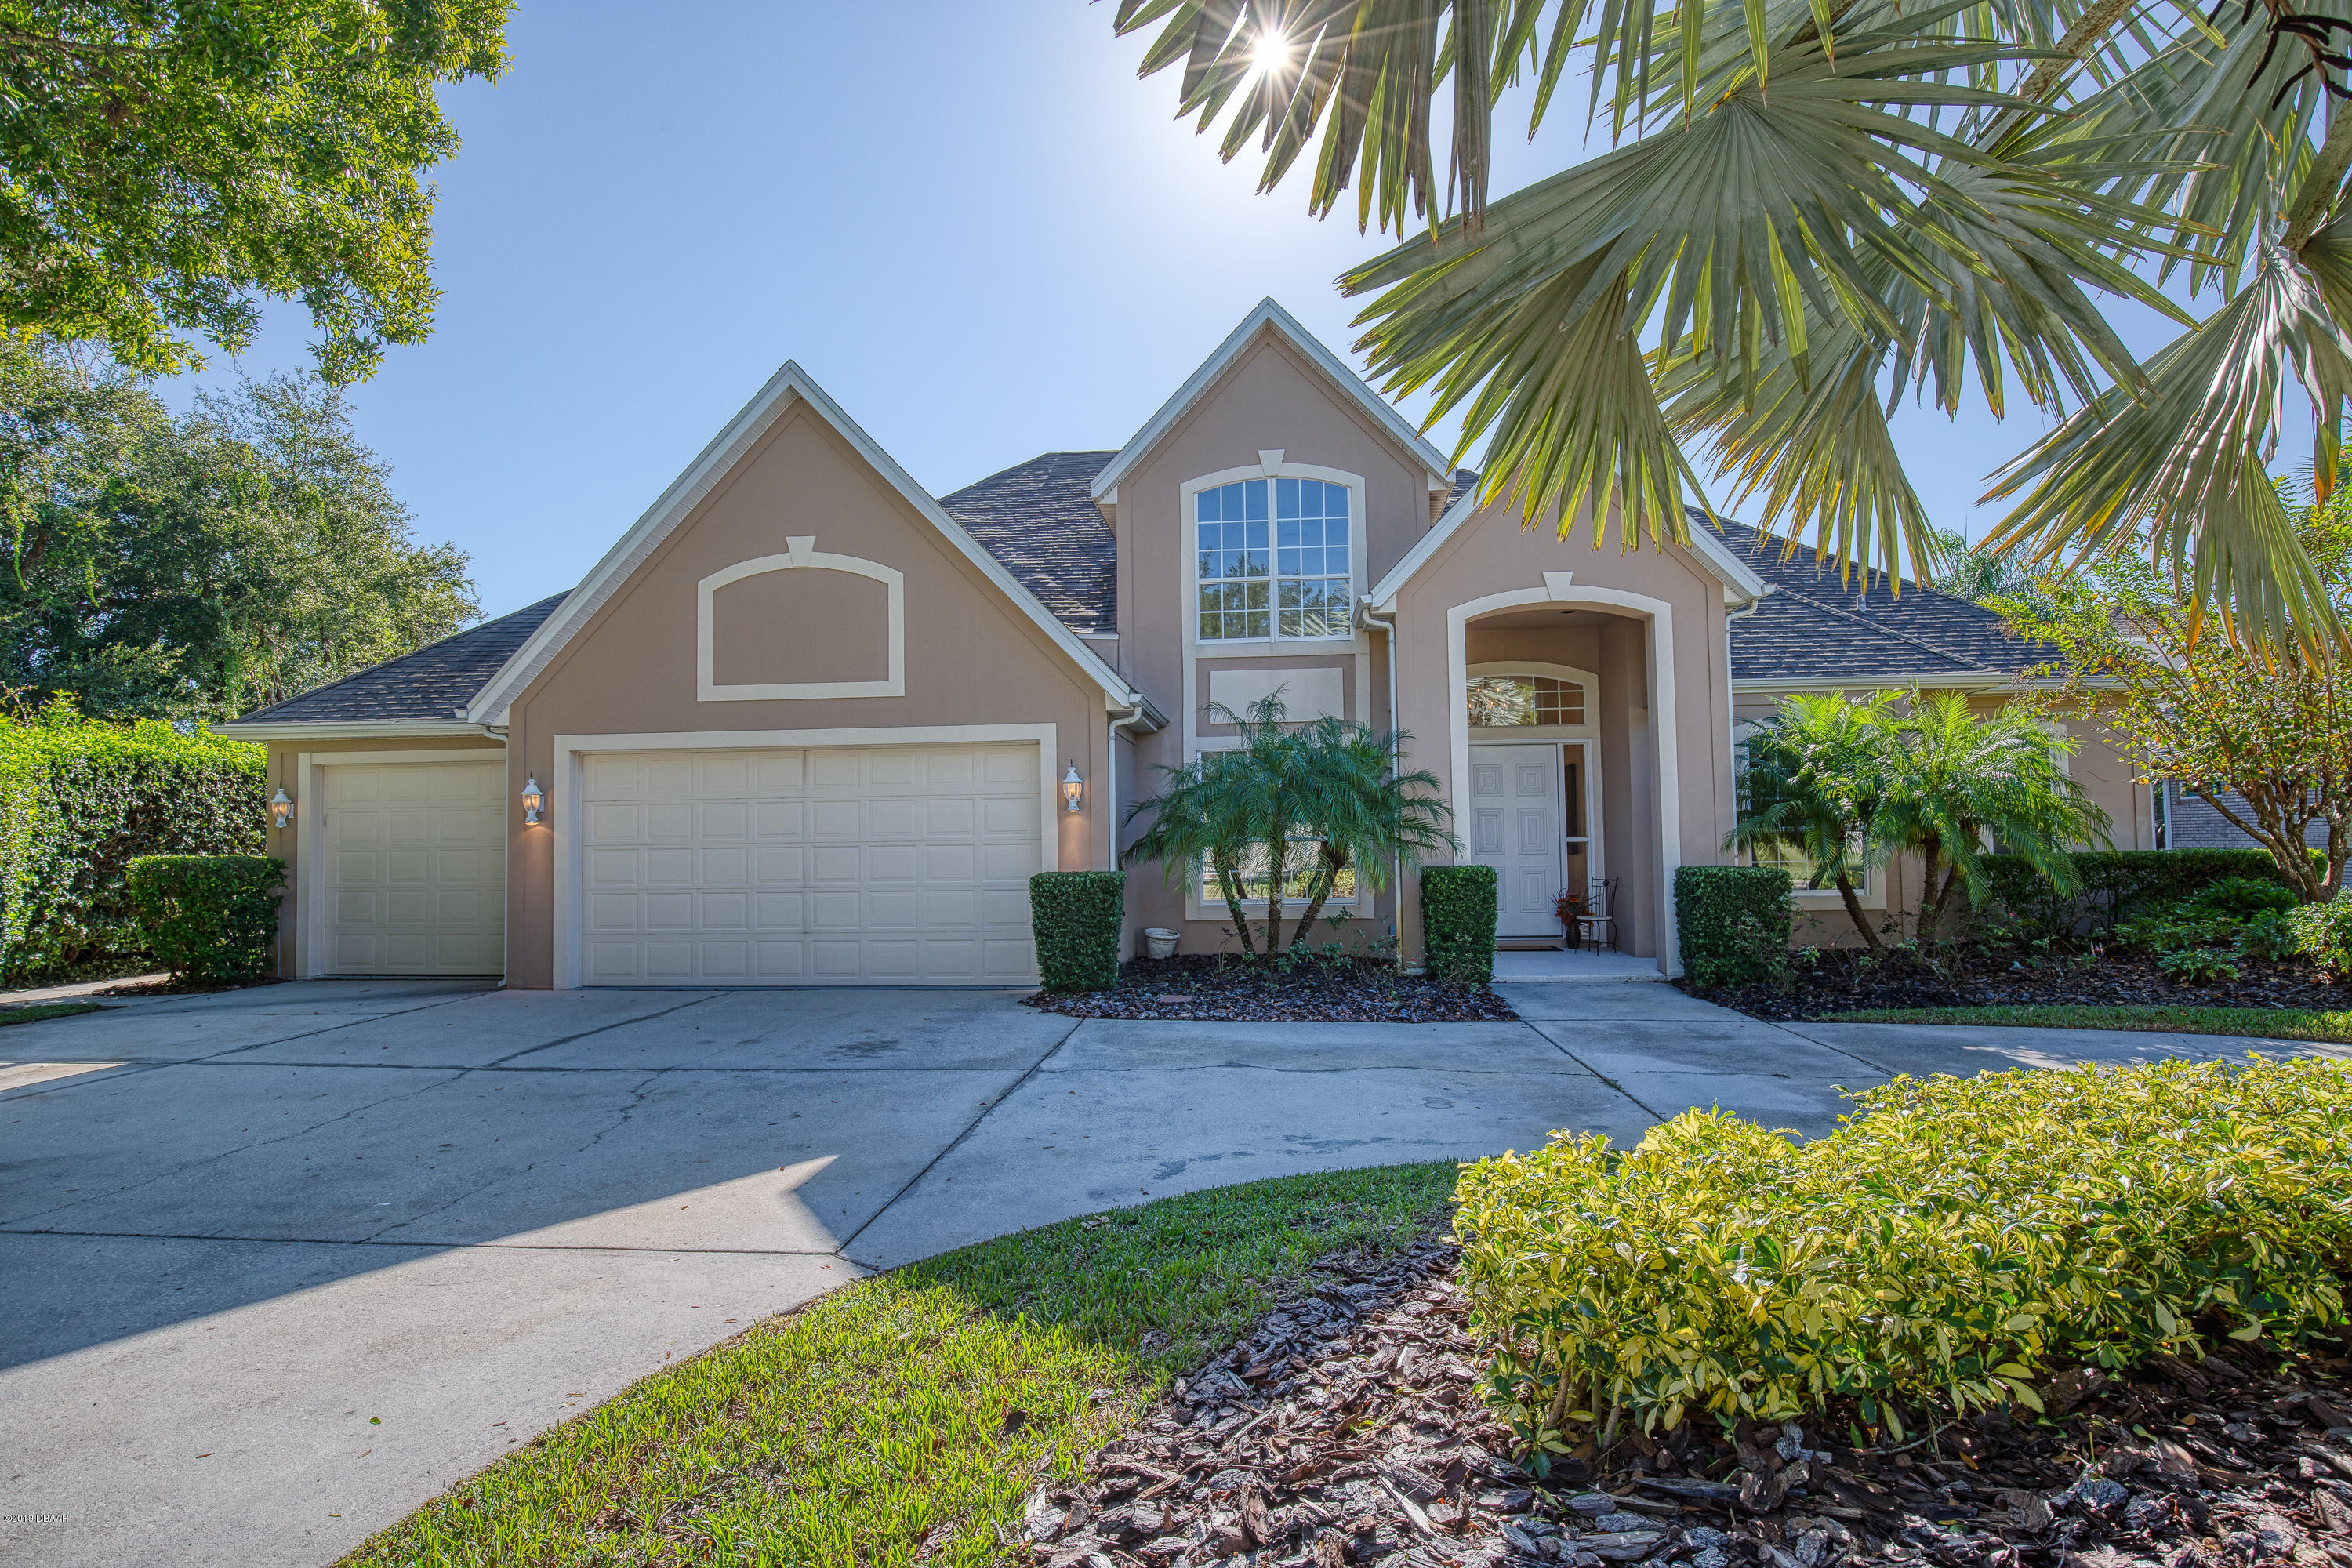 Photo of 1854 Seclusion Drive, Port Orange, FL 32128